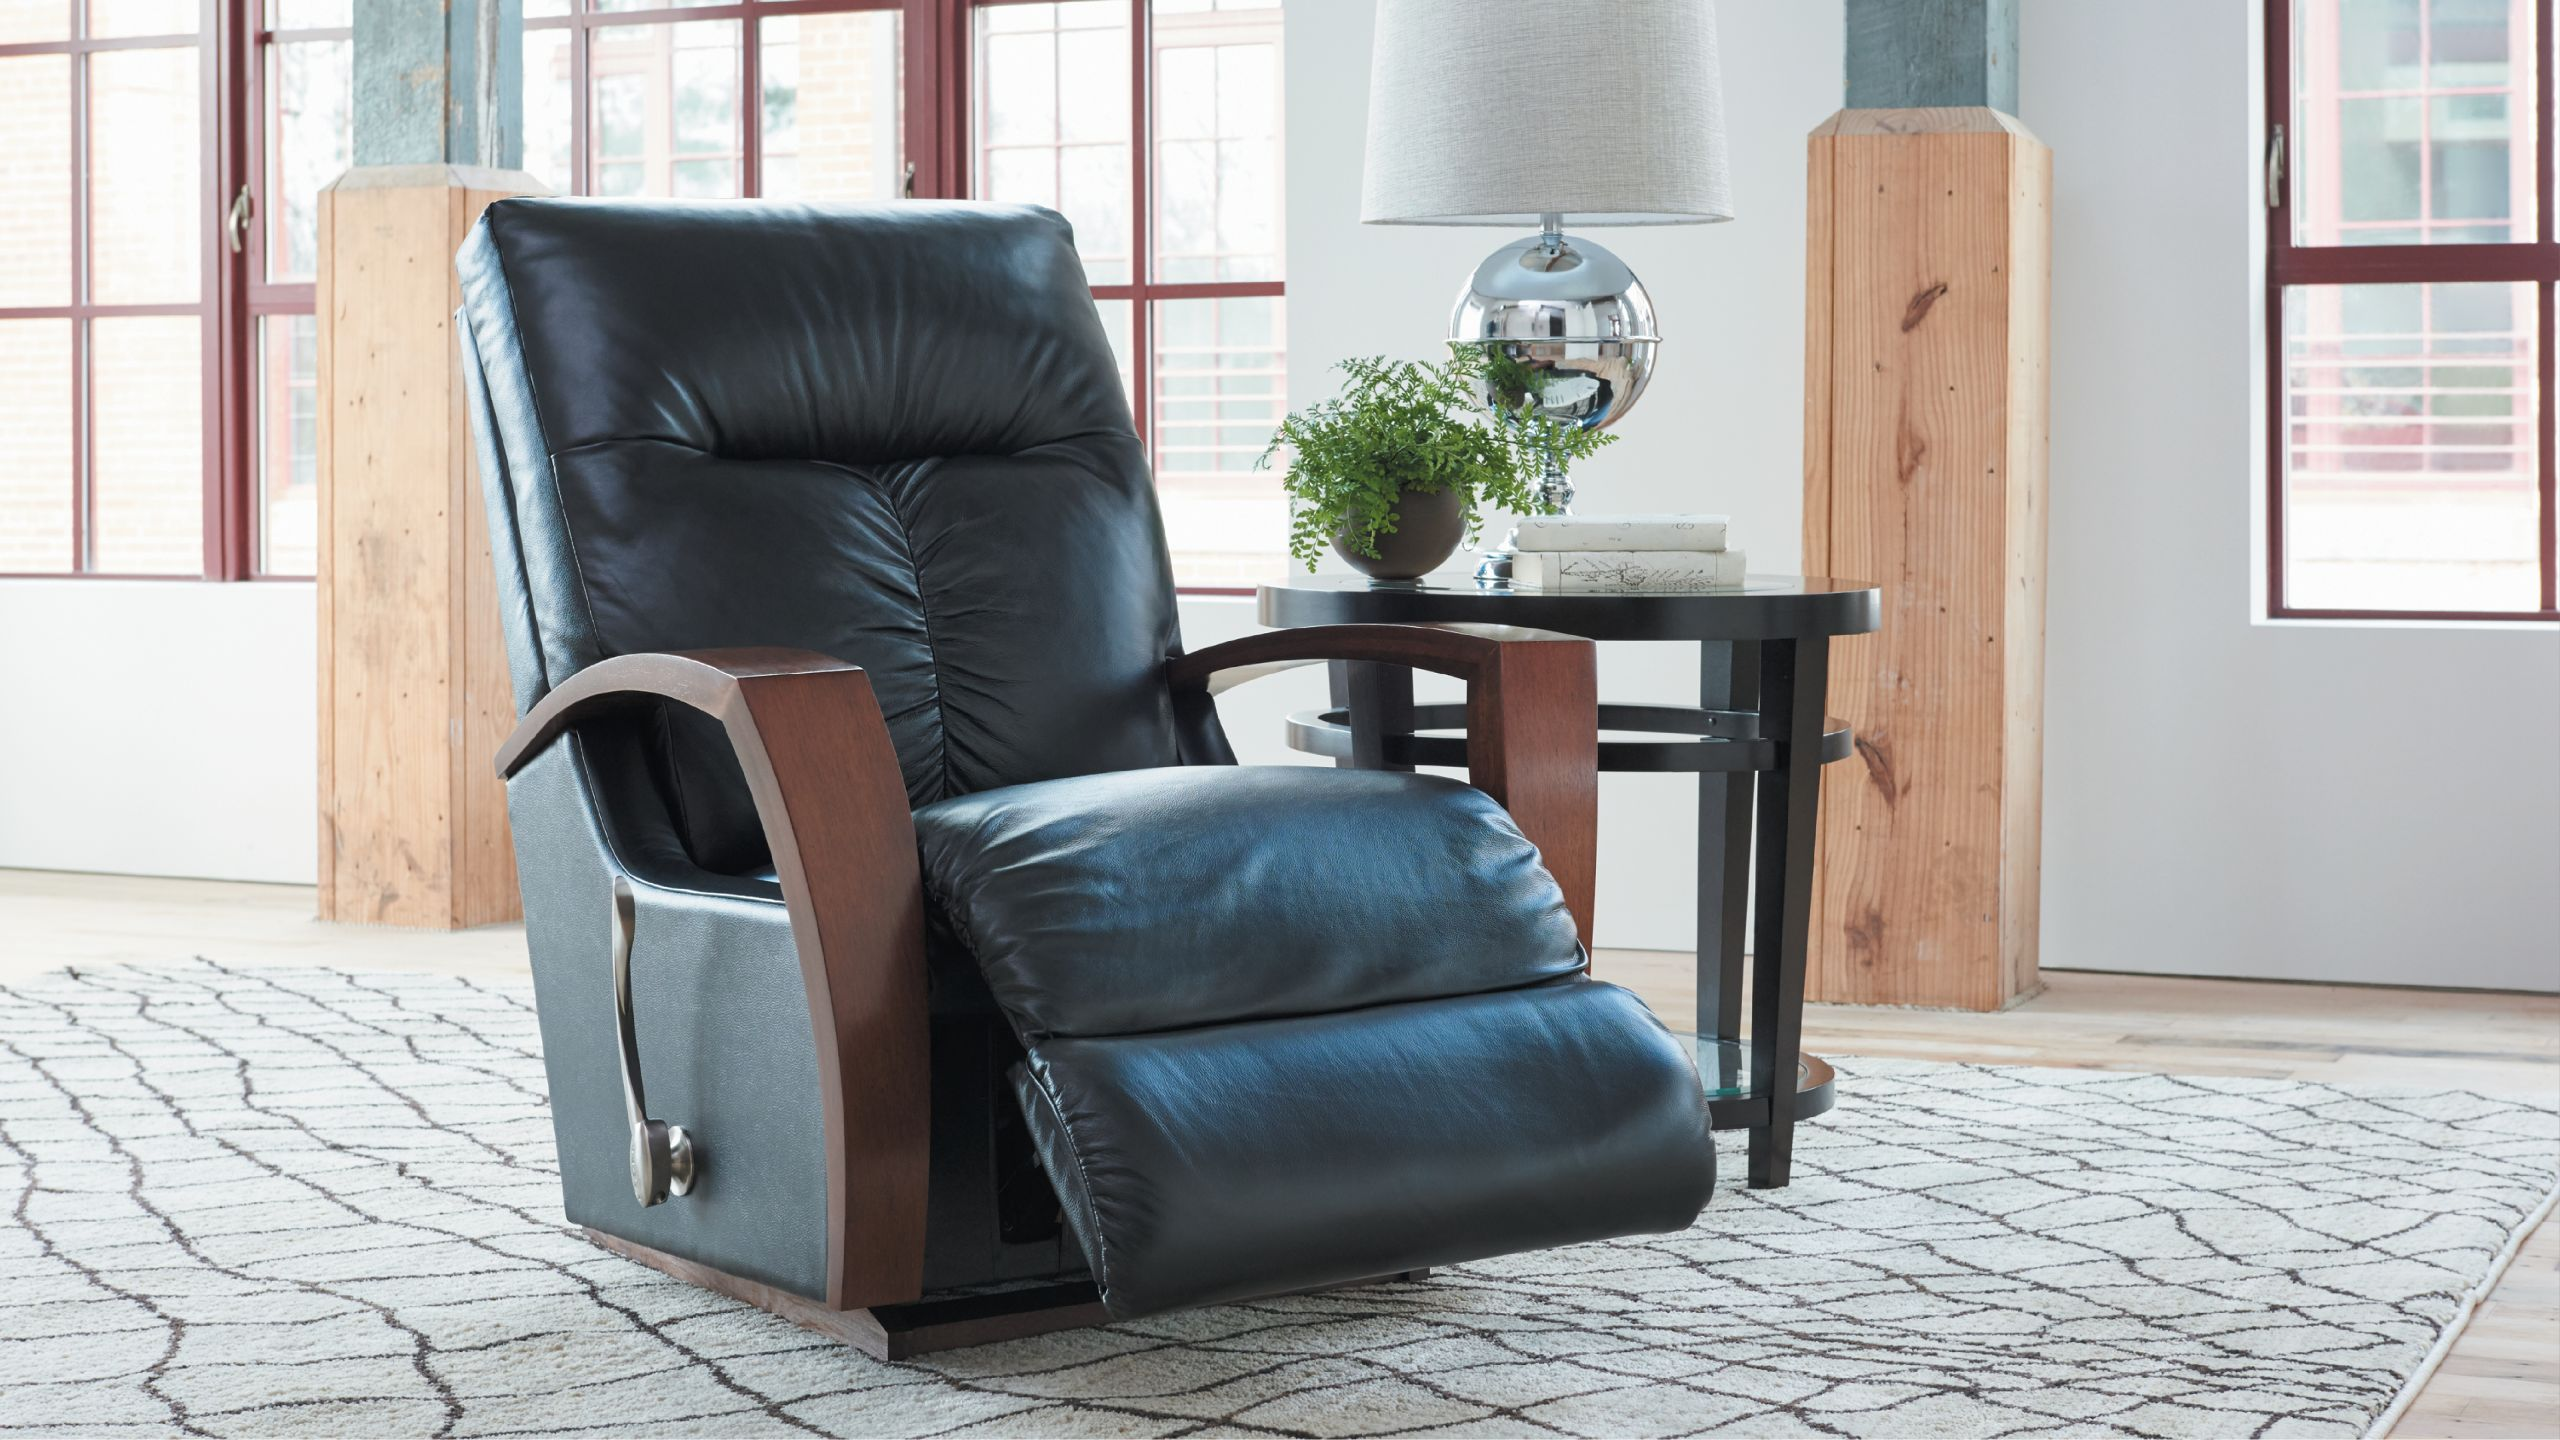 The Story Behind the La-Z-Boy Recliner Begins With an Old Orange Crate